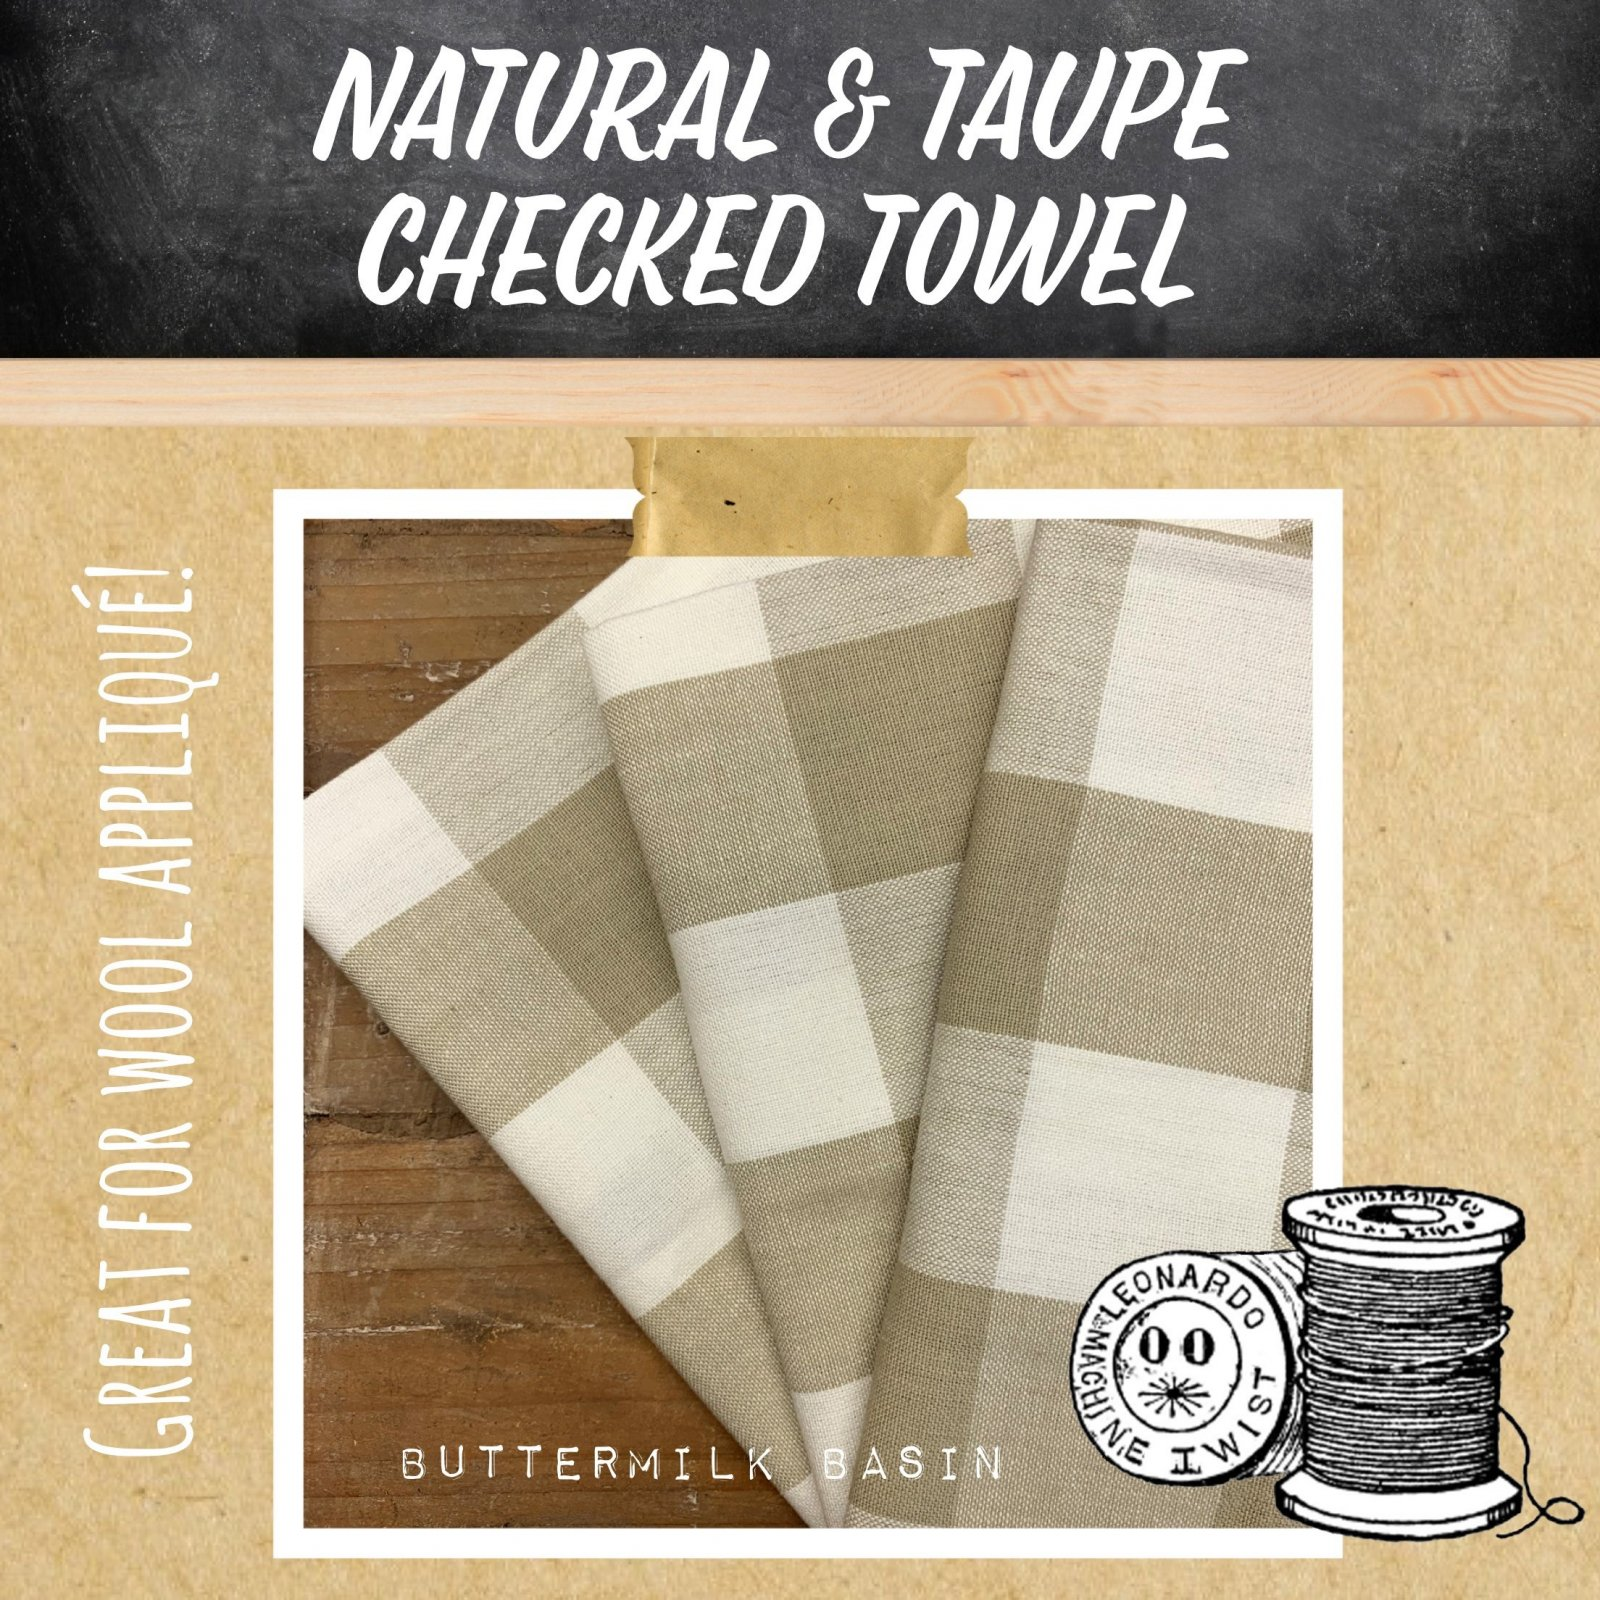 Natural & Taupe Checked Towel